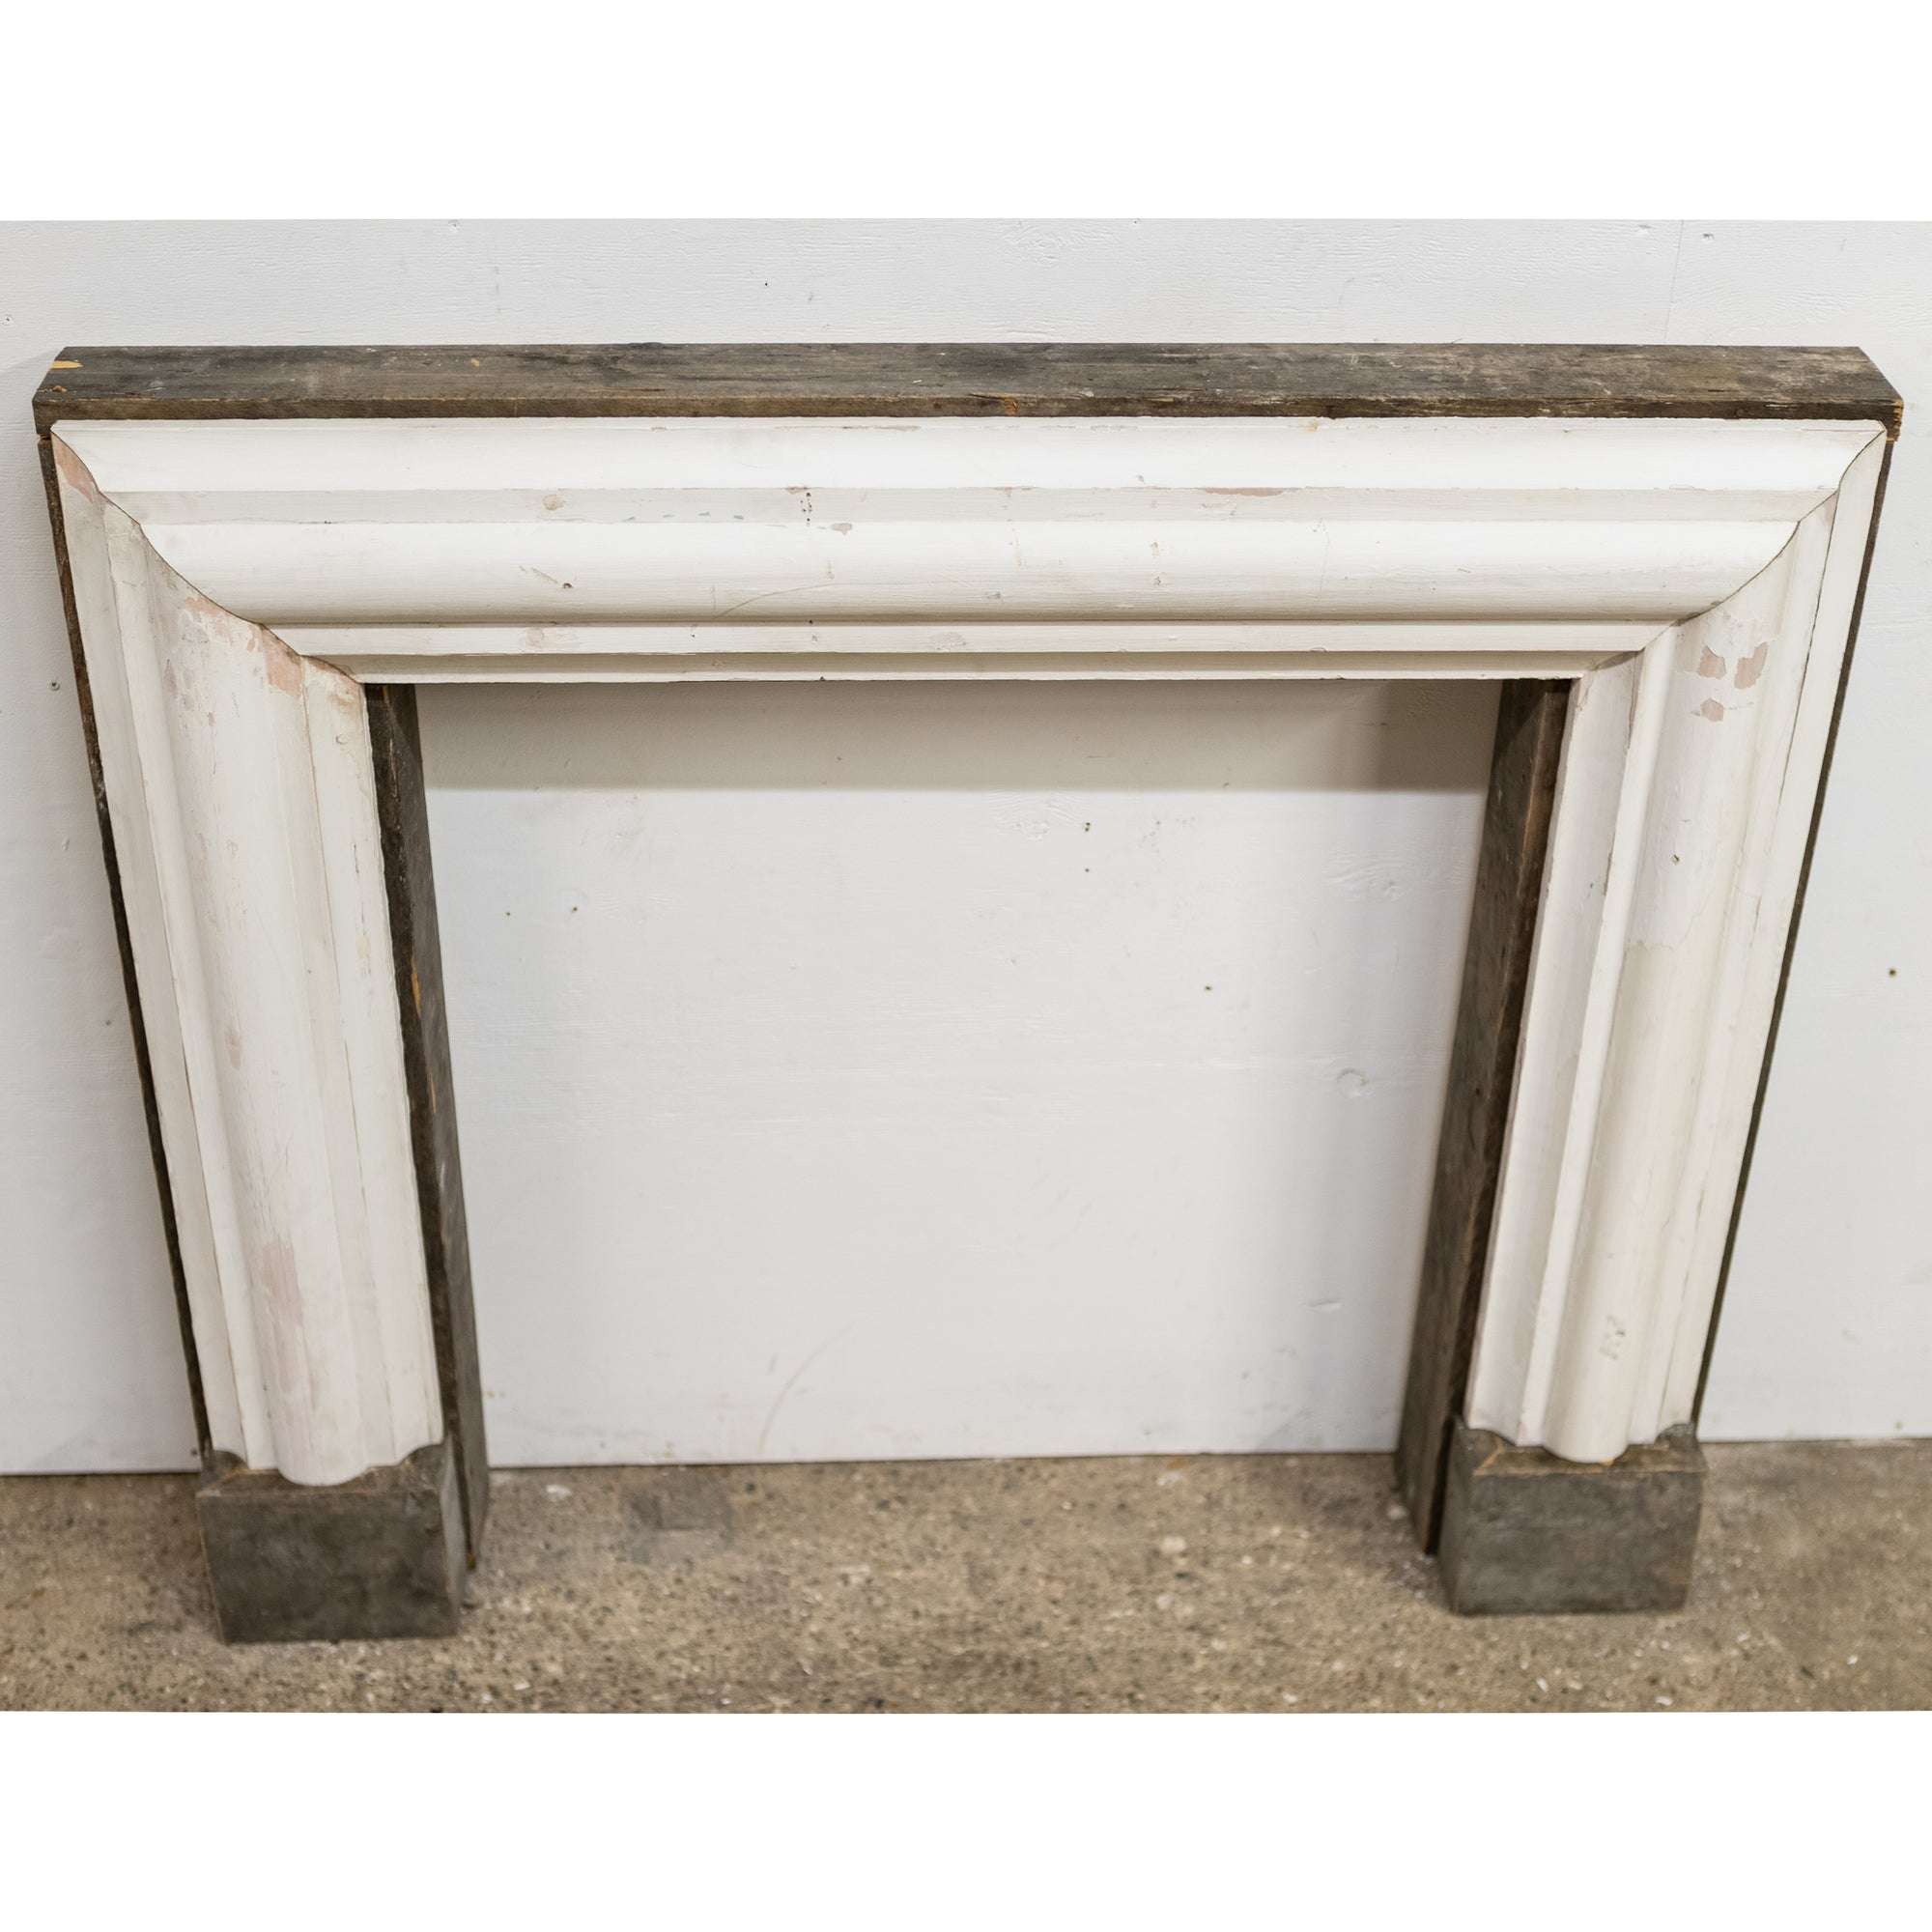 Bolection Fireplace Surround Crafted from Reclaimed Timber | The Architectural Forum